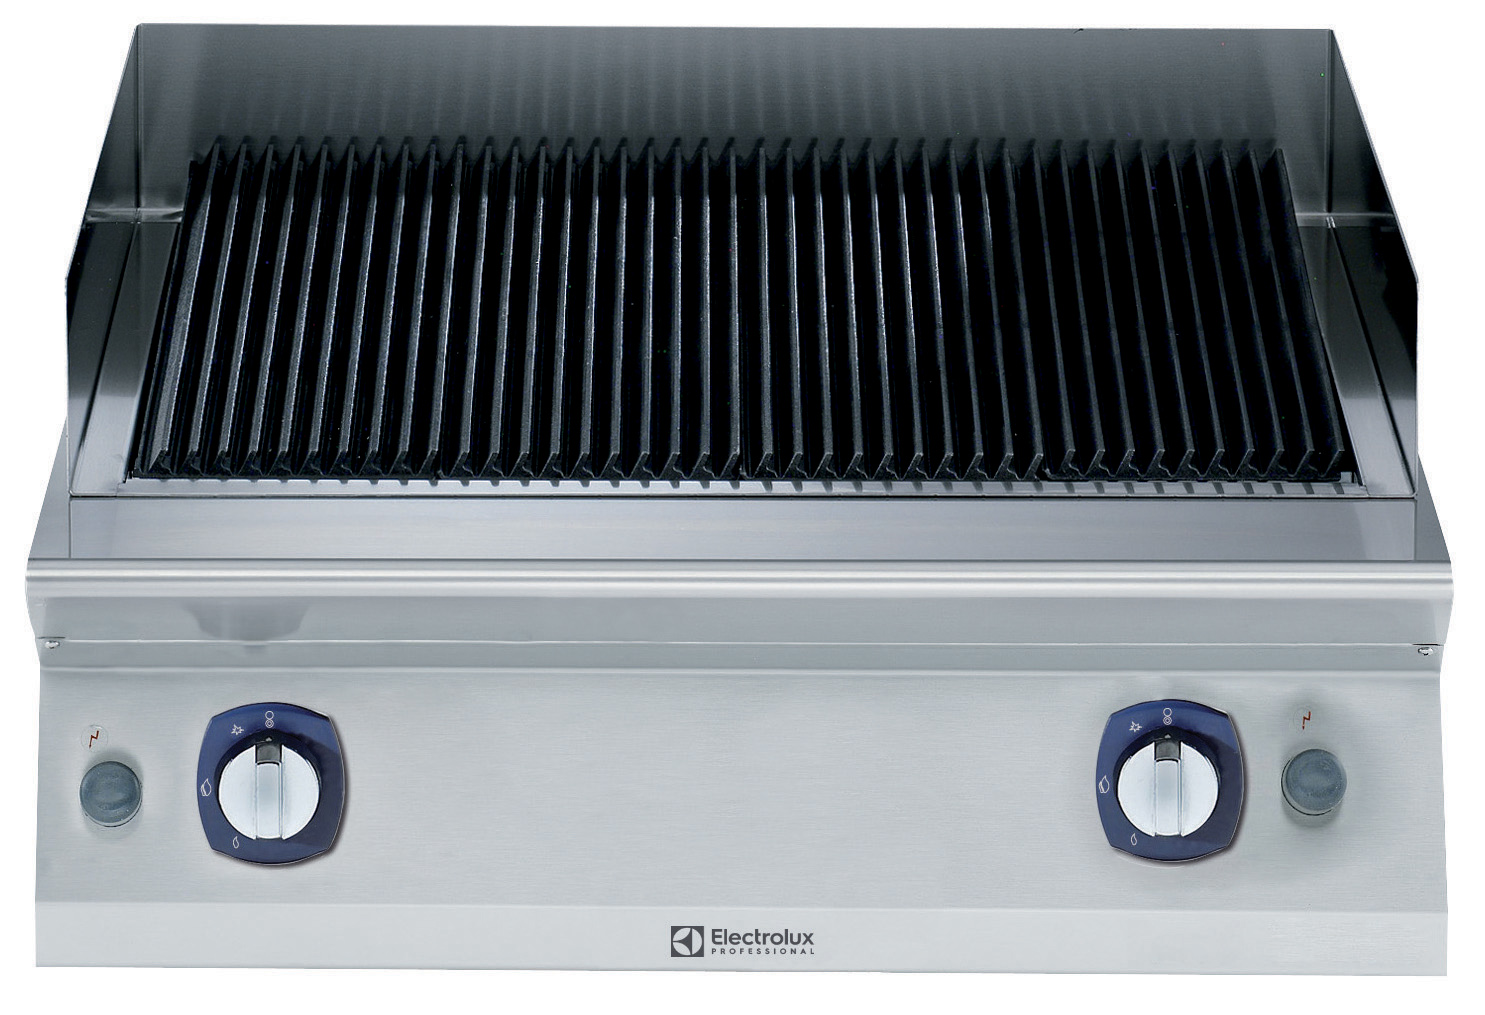 Electrolux Lavastens grill – gas